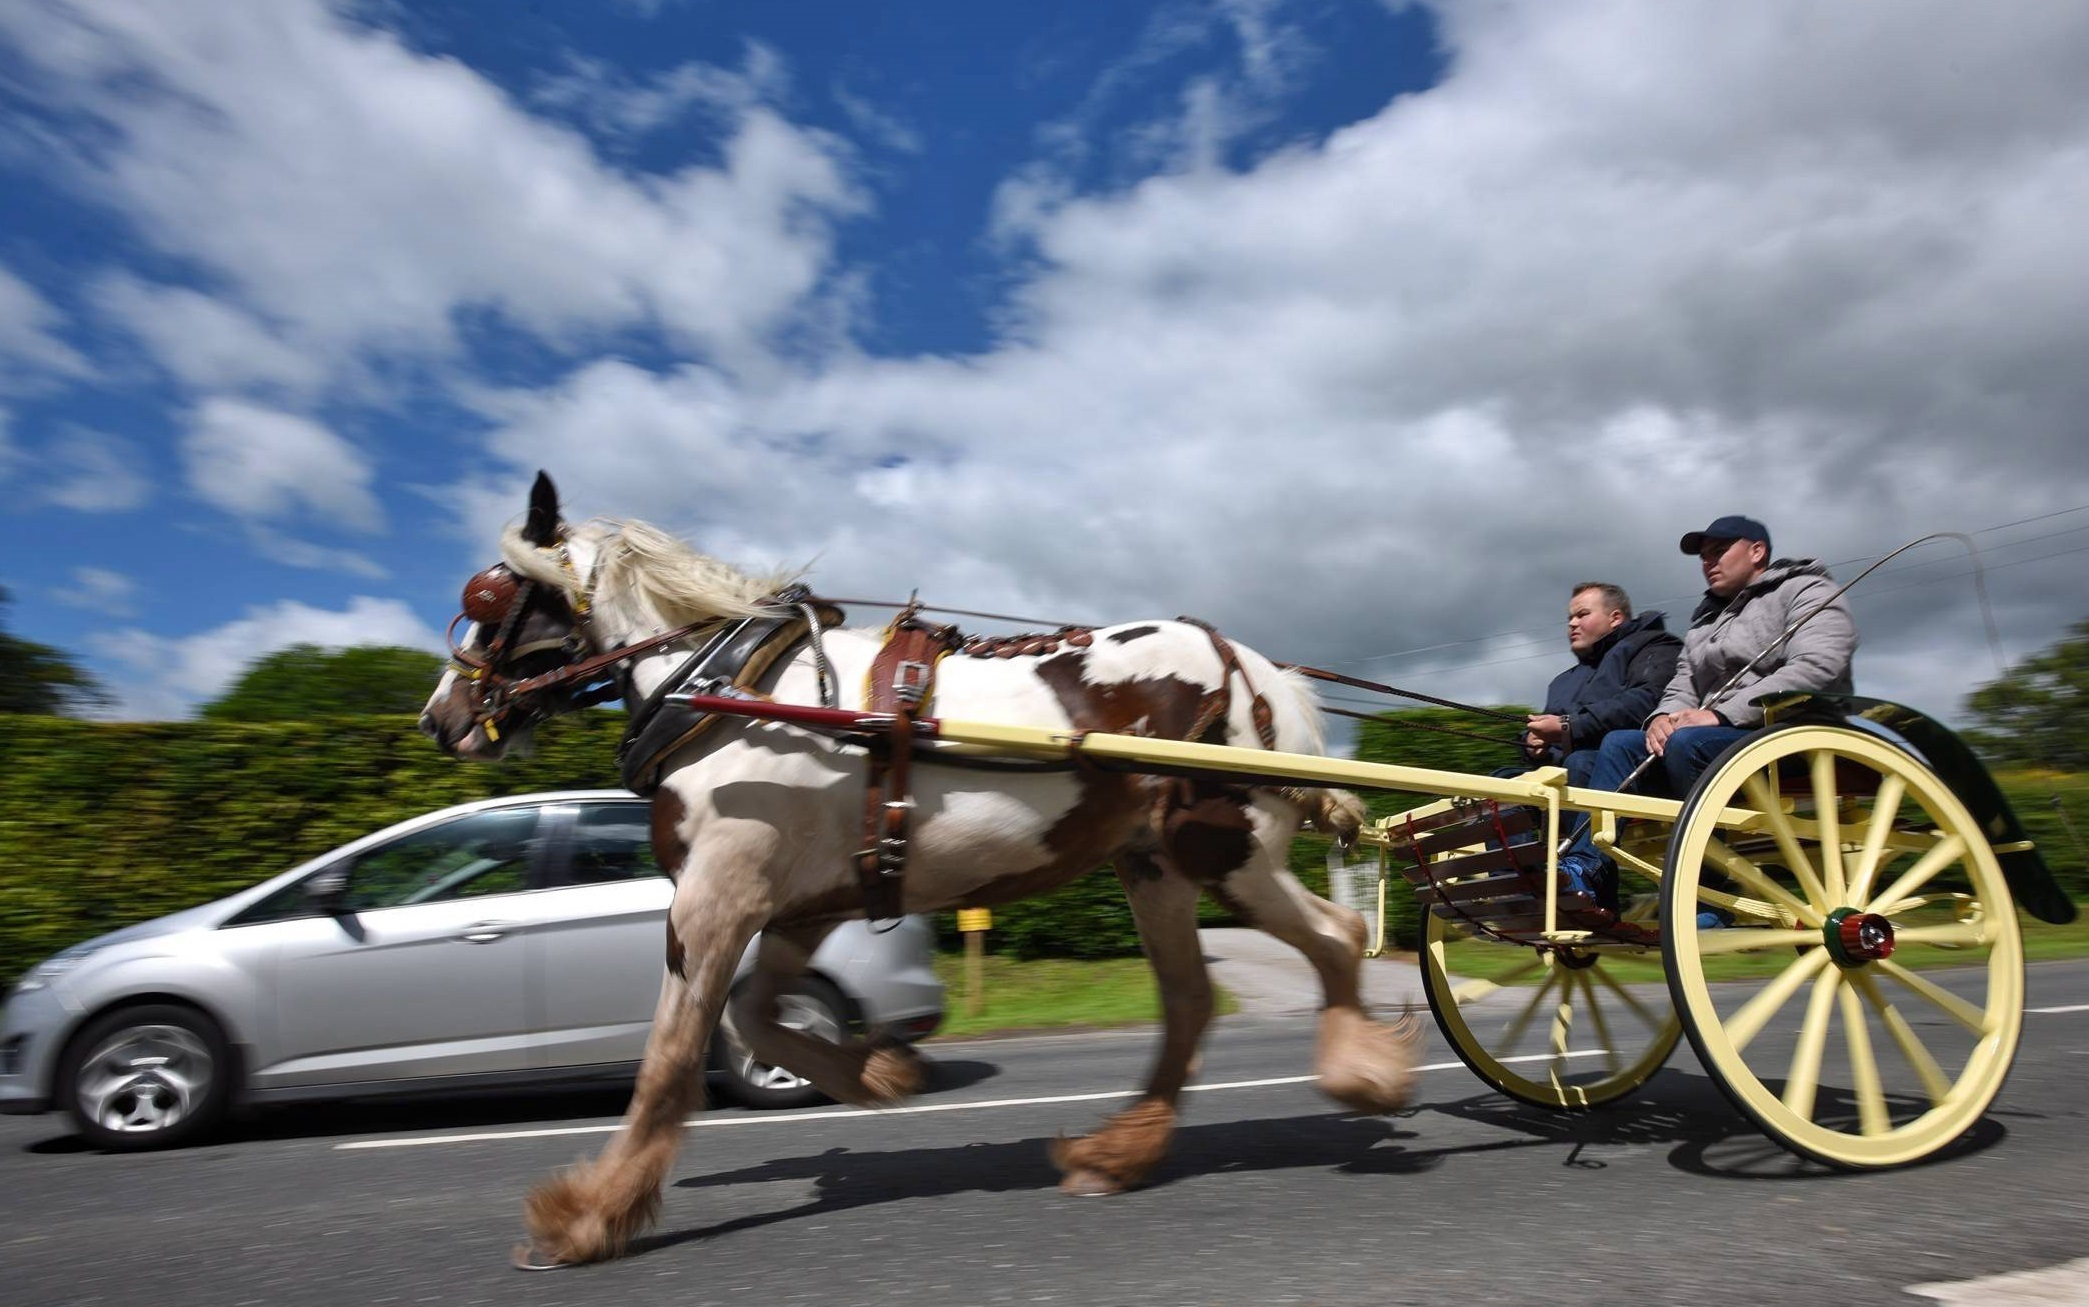 Dated: 07/06/2017  ..The travelling community gather on the fringes of Appleby, Cumbria as the Appleby Horse Fair gets underway this week, where thousands of travellers merge to trade horses at the historic annual event in the Eden Valley... NOT AVAILABLE